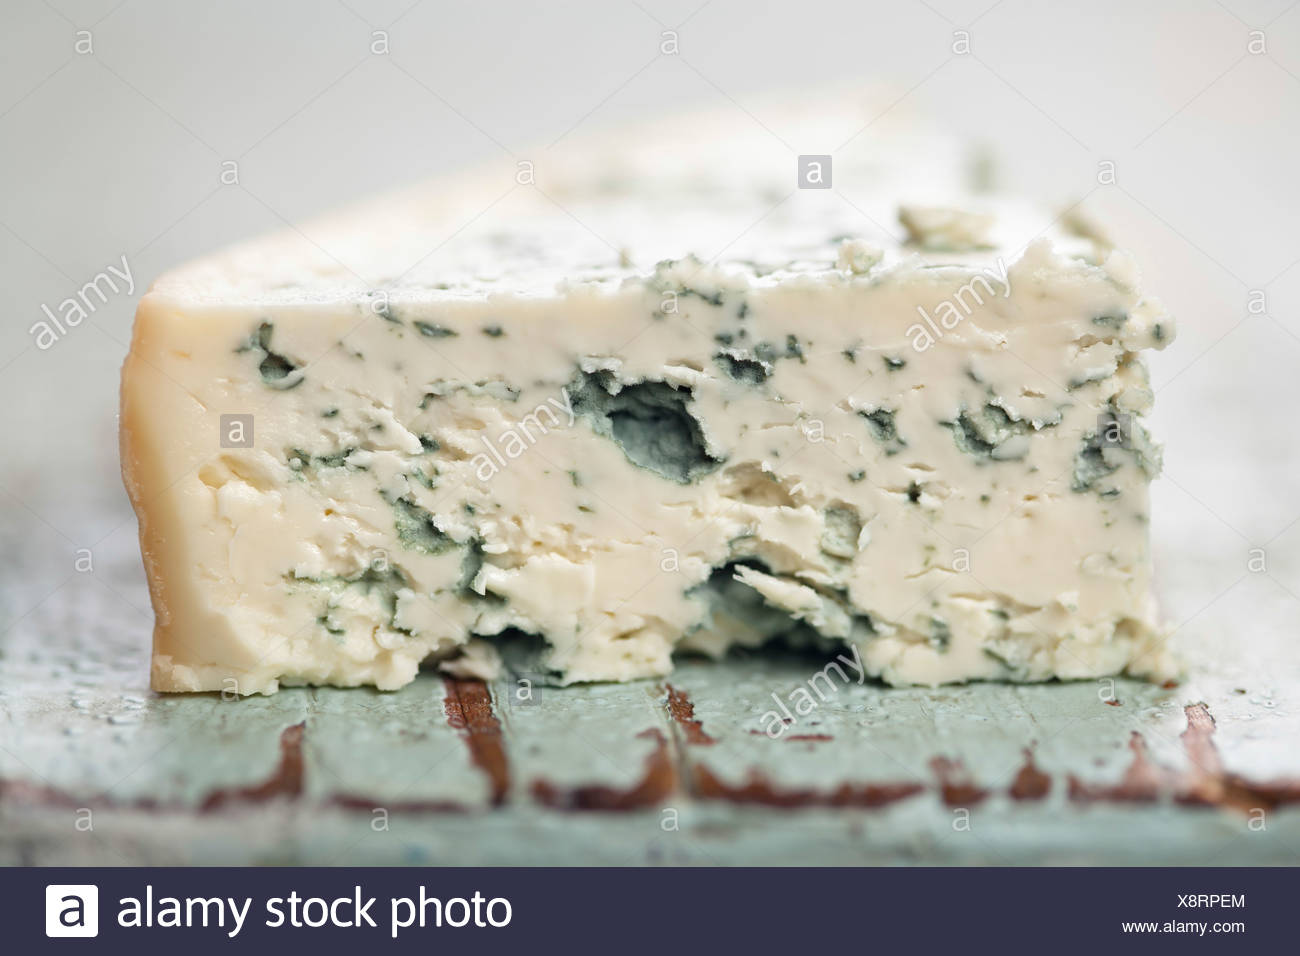 Piece of soft blue cheese - Stock Image